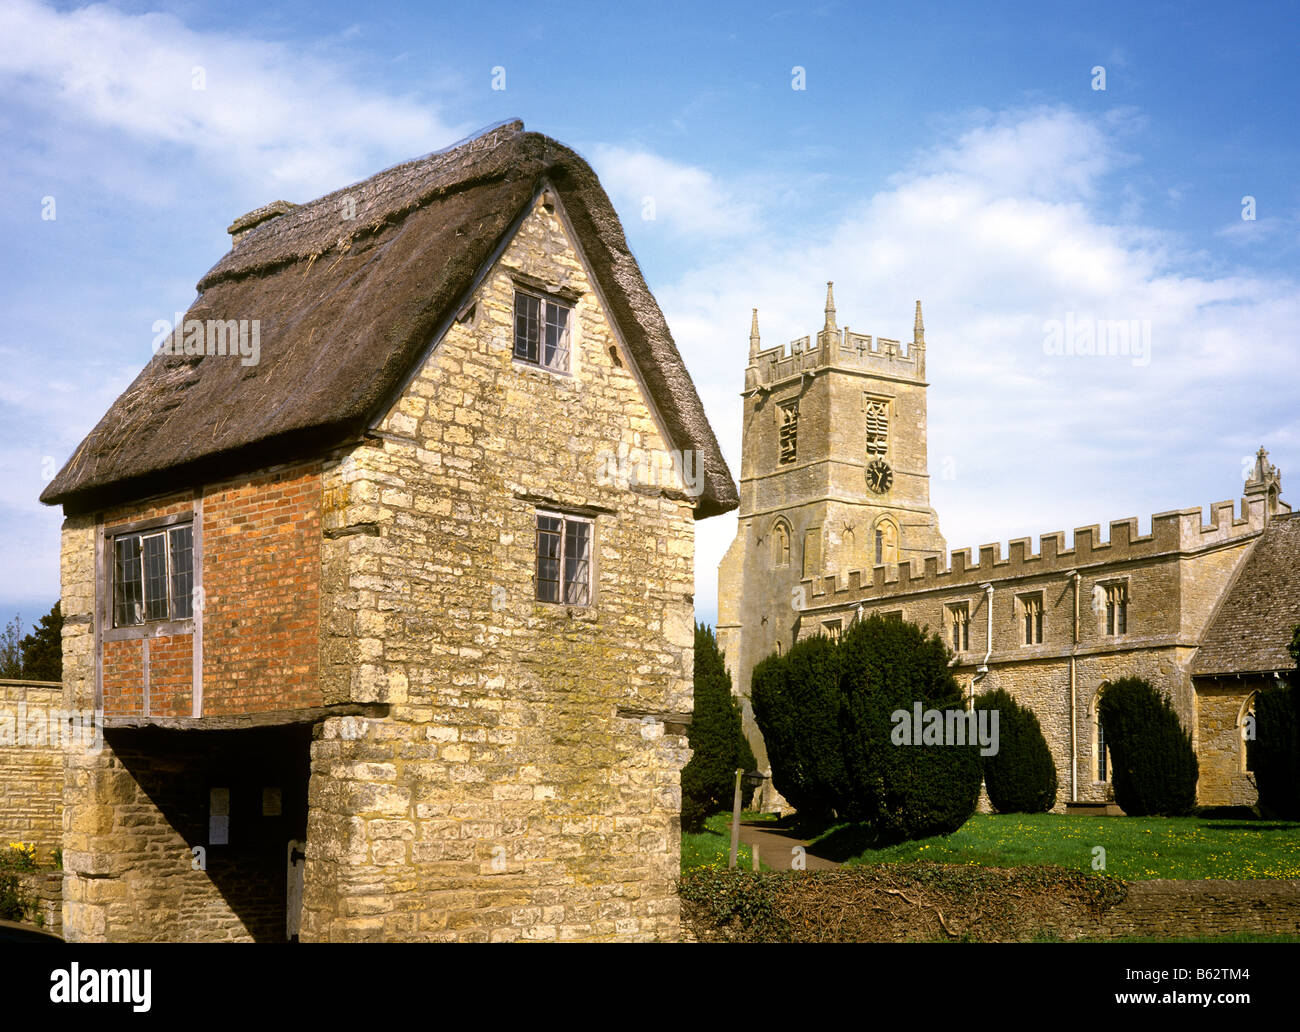 UK England Oxfordshire cotswolds Long Compton Church with unusual timber framed gatehouse - Stock Image